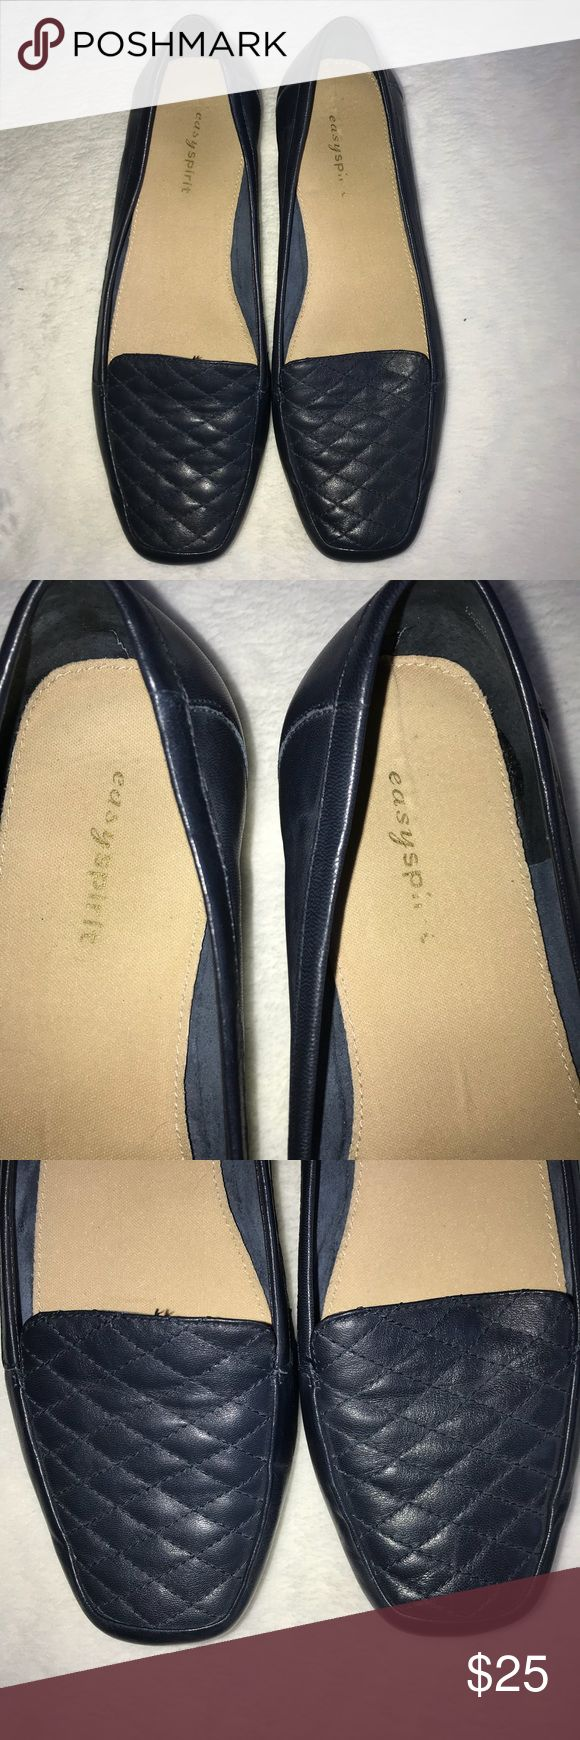 Easy Spirit Womens Shoes Slip On Navy Blue Size 8W Easy Spirit Womens Shoes Style Jessas style Slip On Loafers Leather Navy Blue Size 8W. In good used condition. Only worn a few times. Easy Spirit Shoes Flats & Loafers